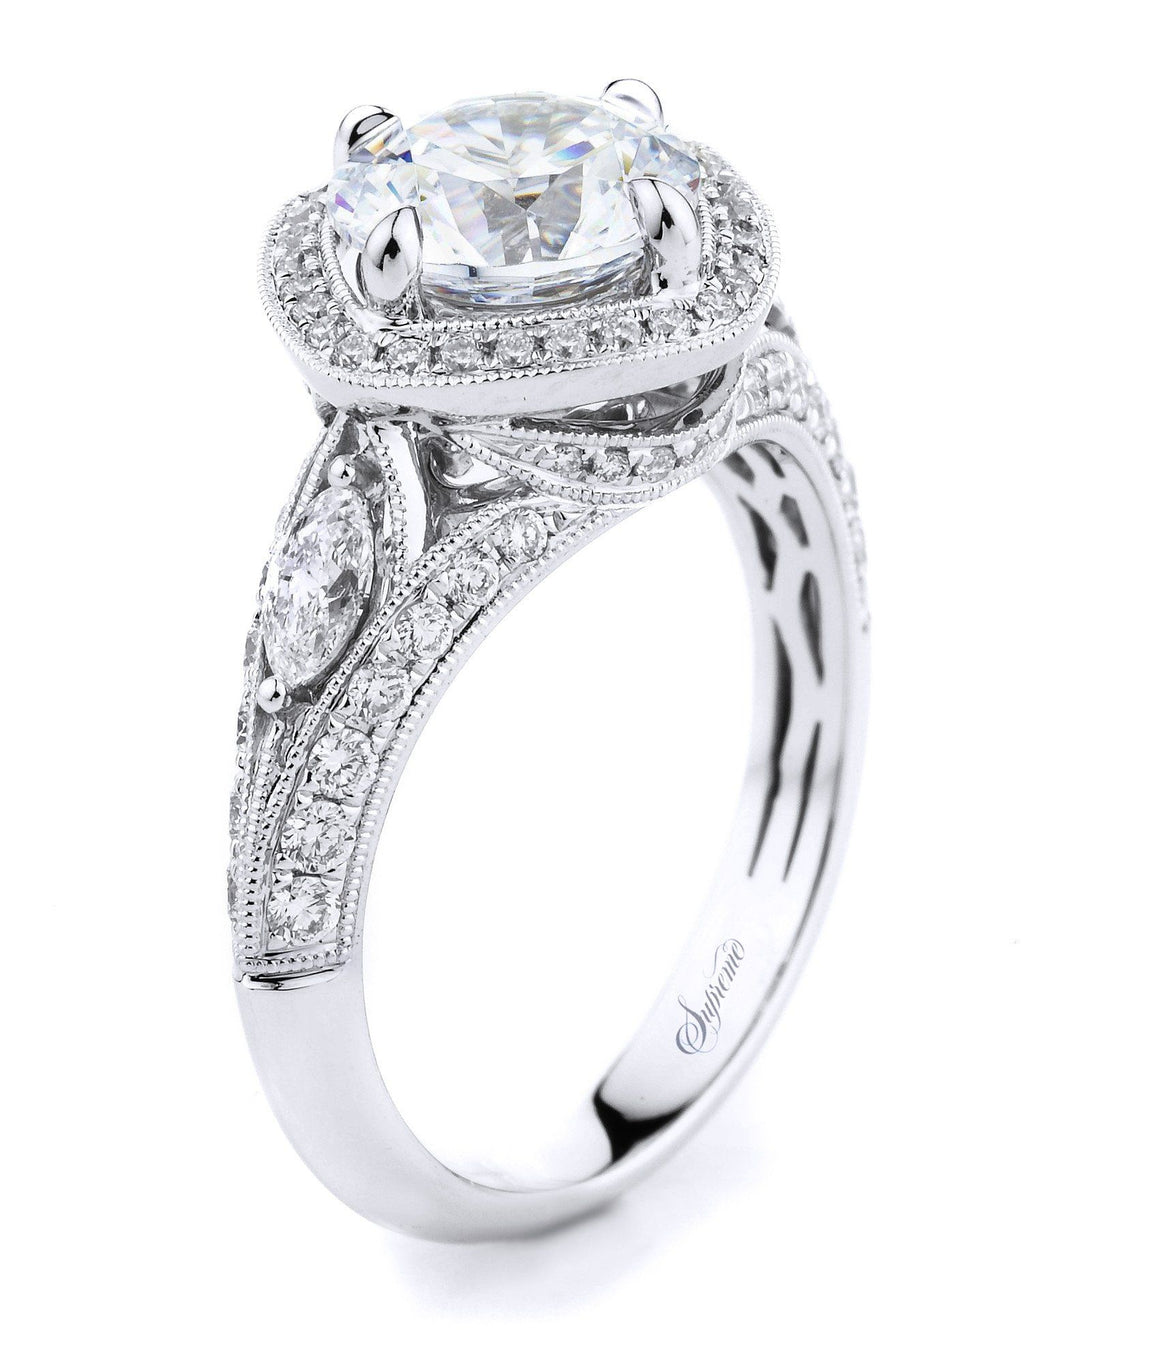 Supreme - SJU1691R, Engagement Ring, Supreme Jewelry - Birmingham Jewelry